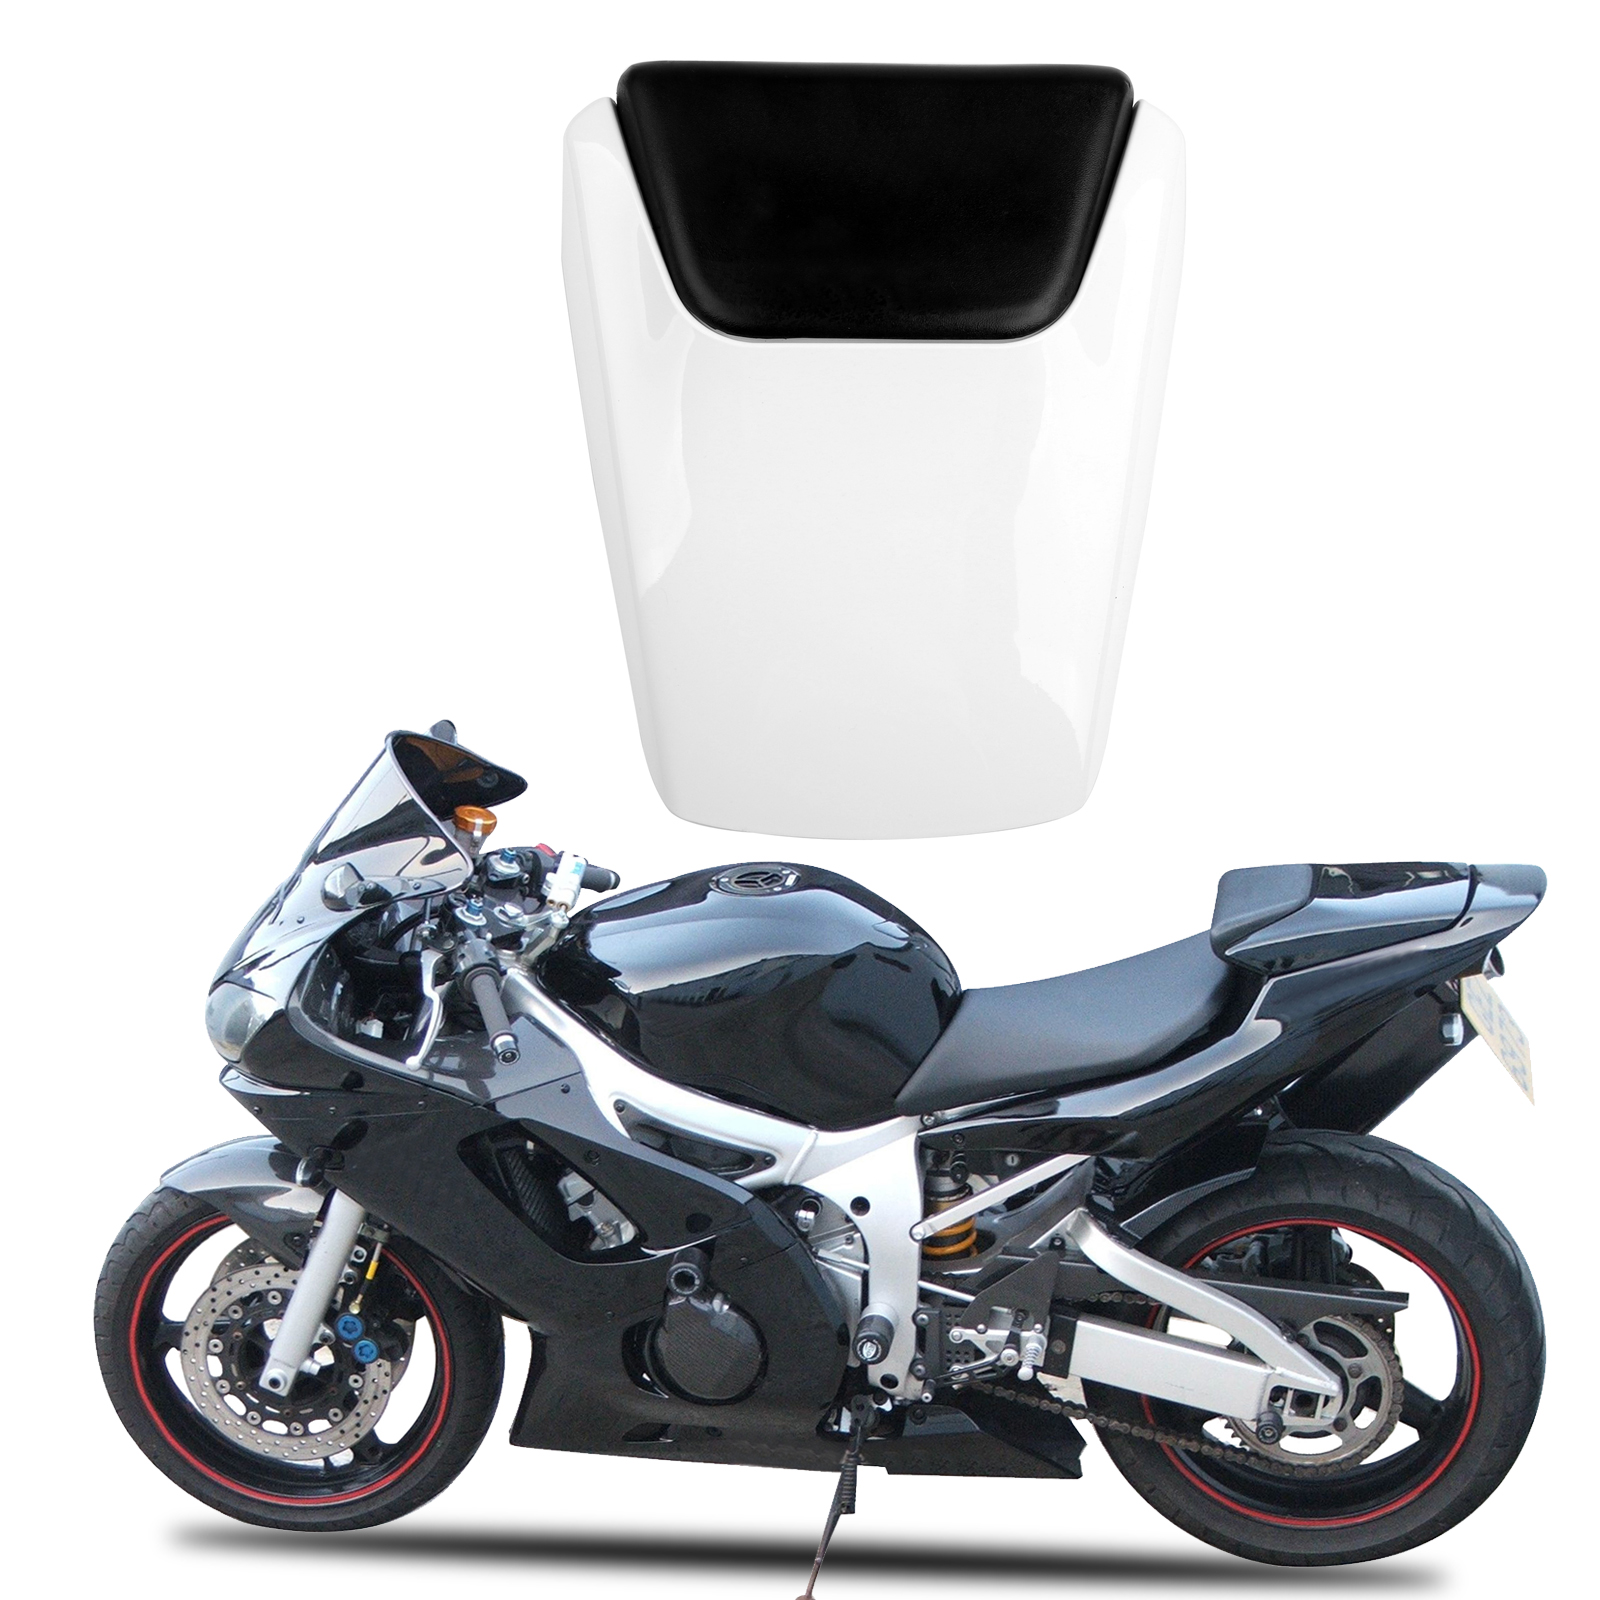 Rear Pillion Seat Cowl Fairing Cover For Yamaha Yzf R6 1998 2002 1999 White Ebay